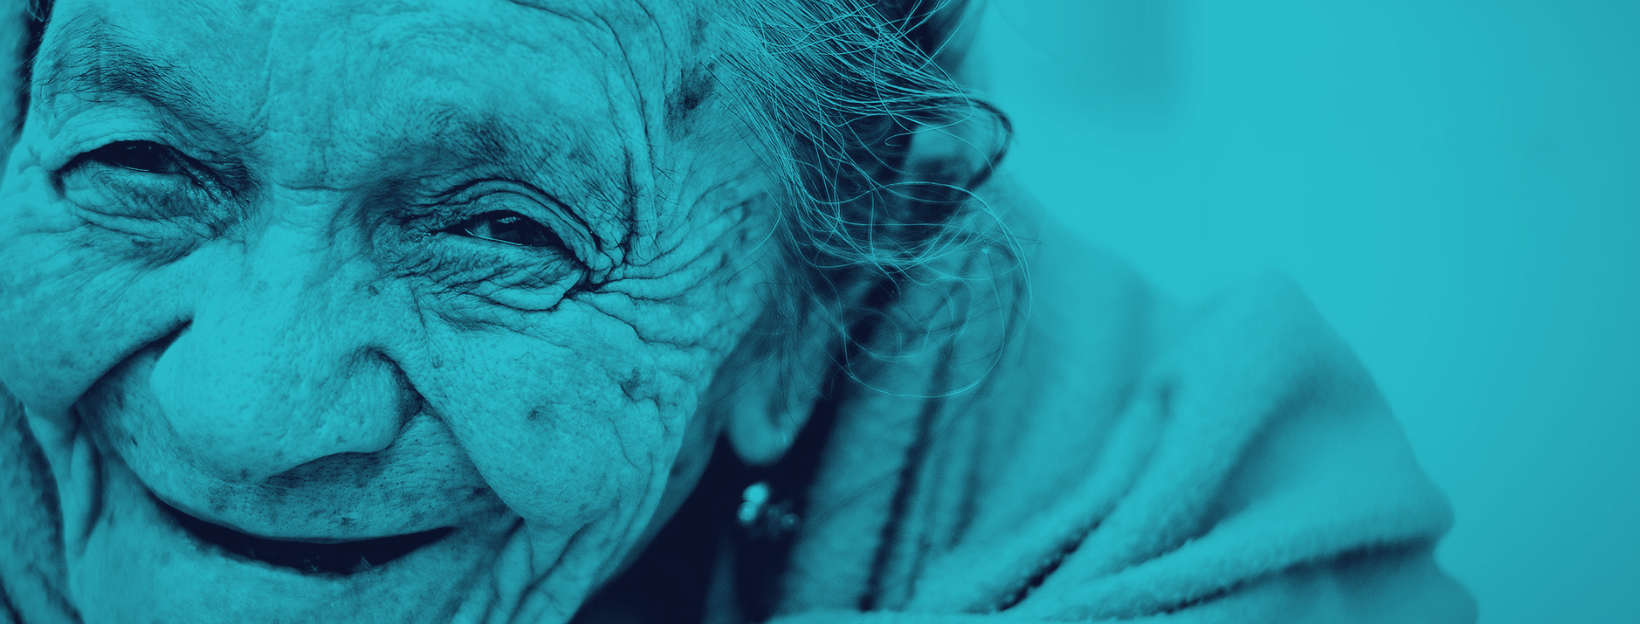 Why Do We Age? 4 Theories of Aging